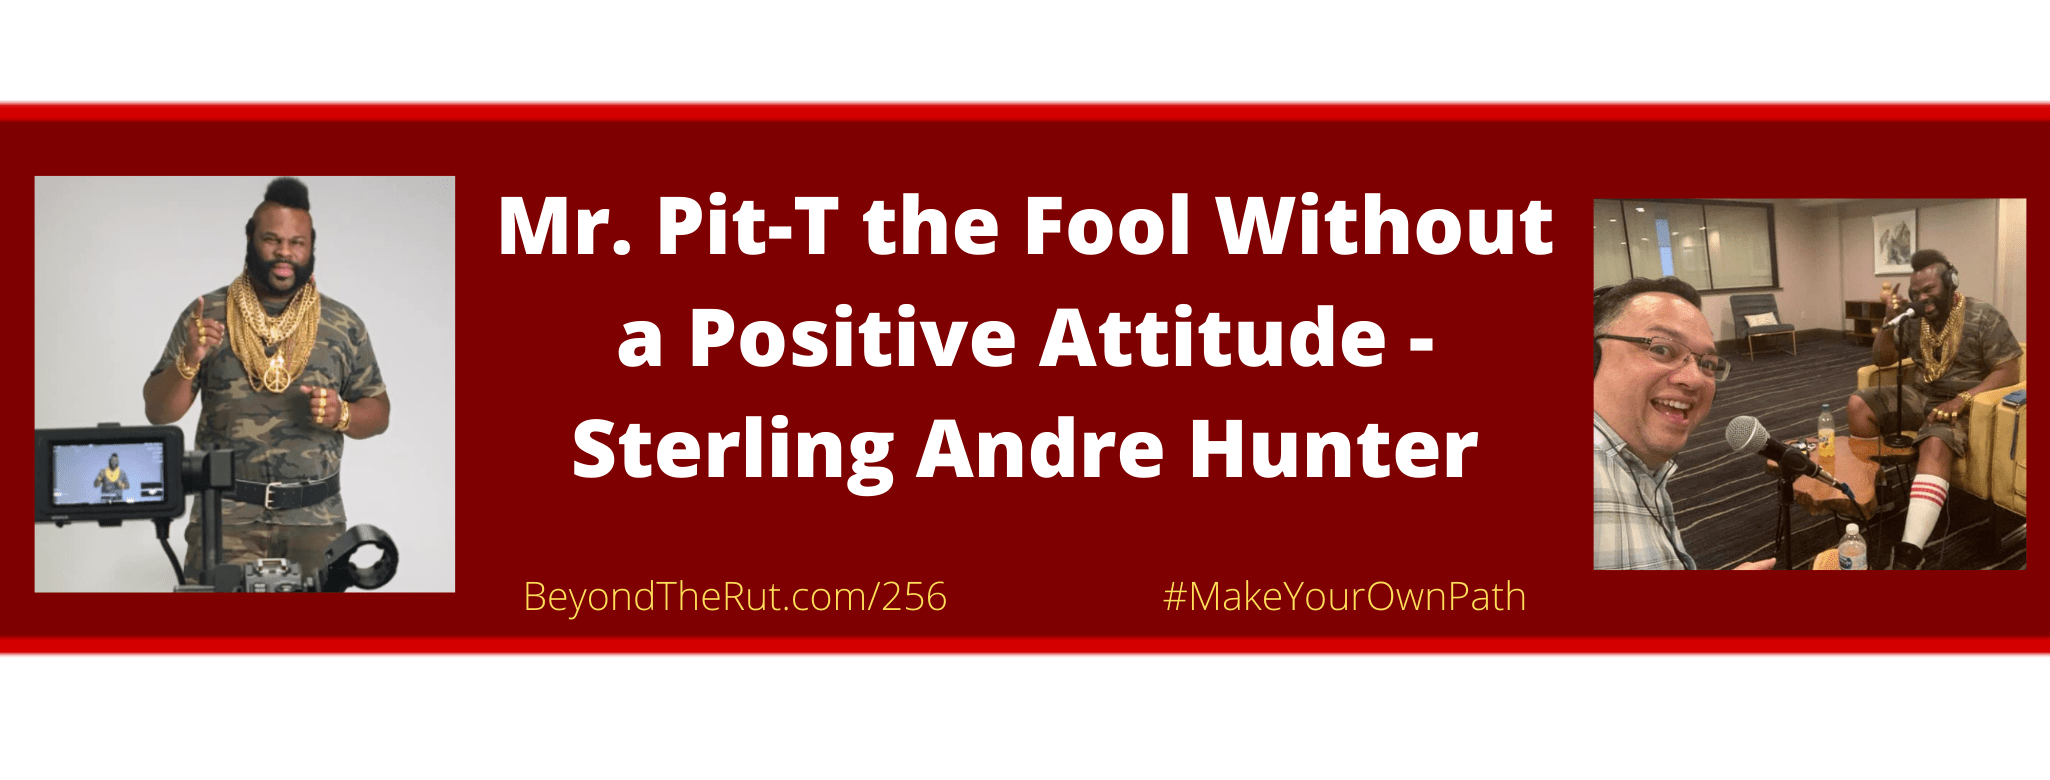 Jerry Dugan and Mr Pit-T Sterling Andre Hunter discuss the power of a positive attitude.